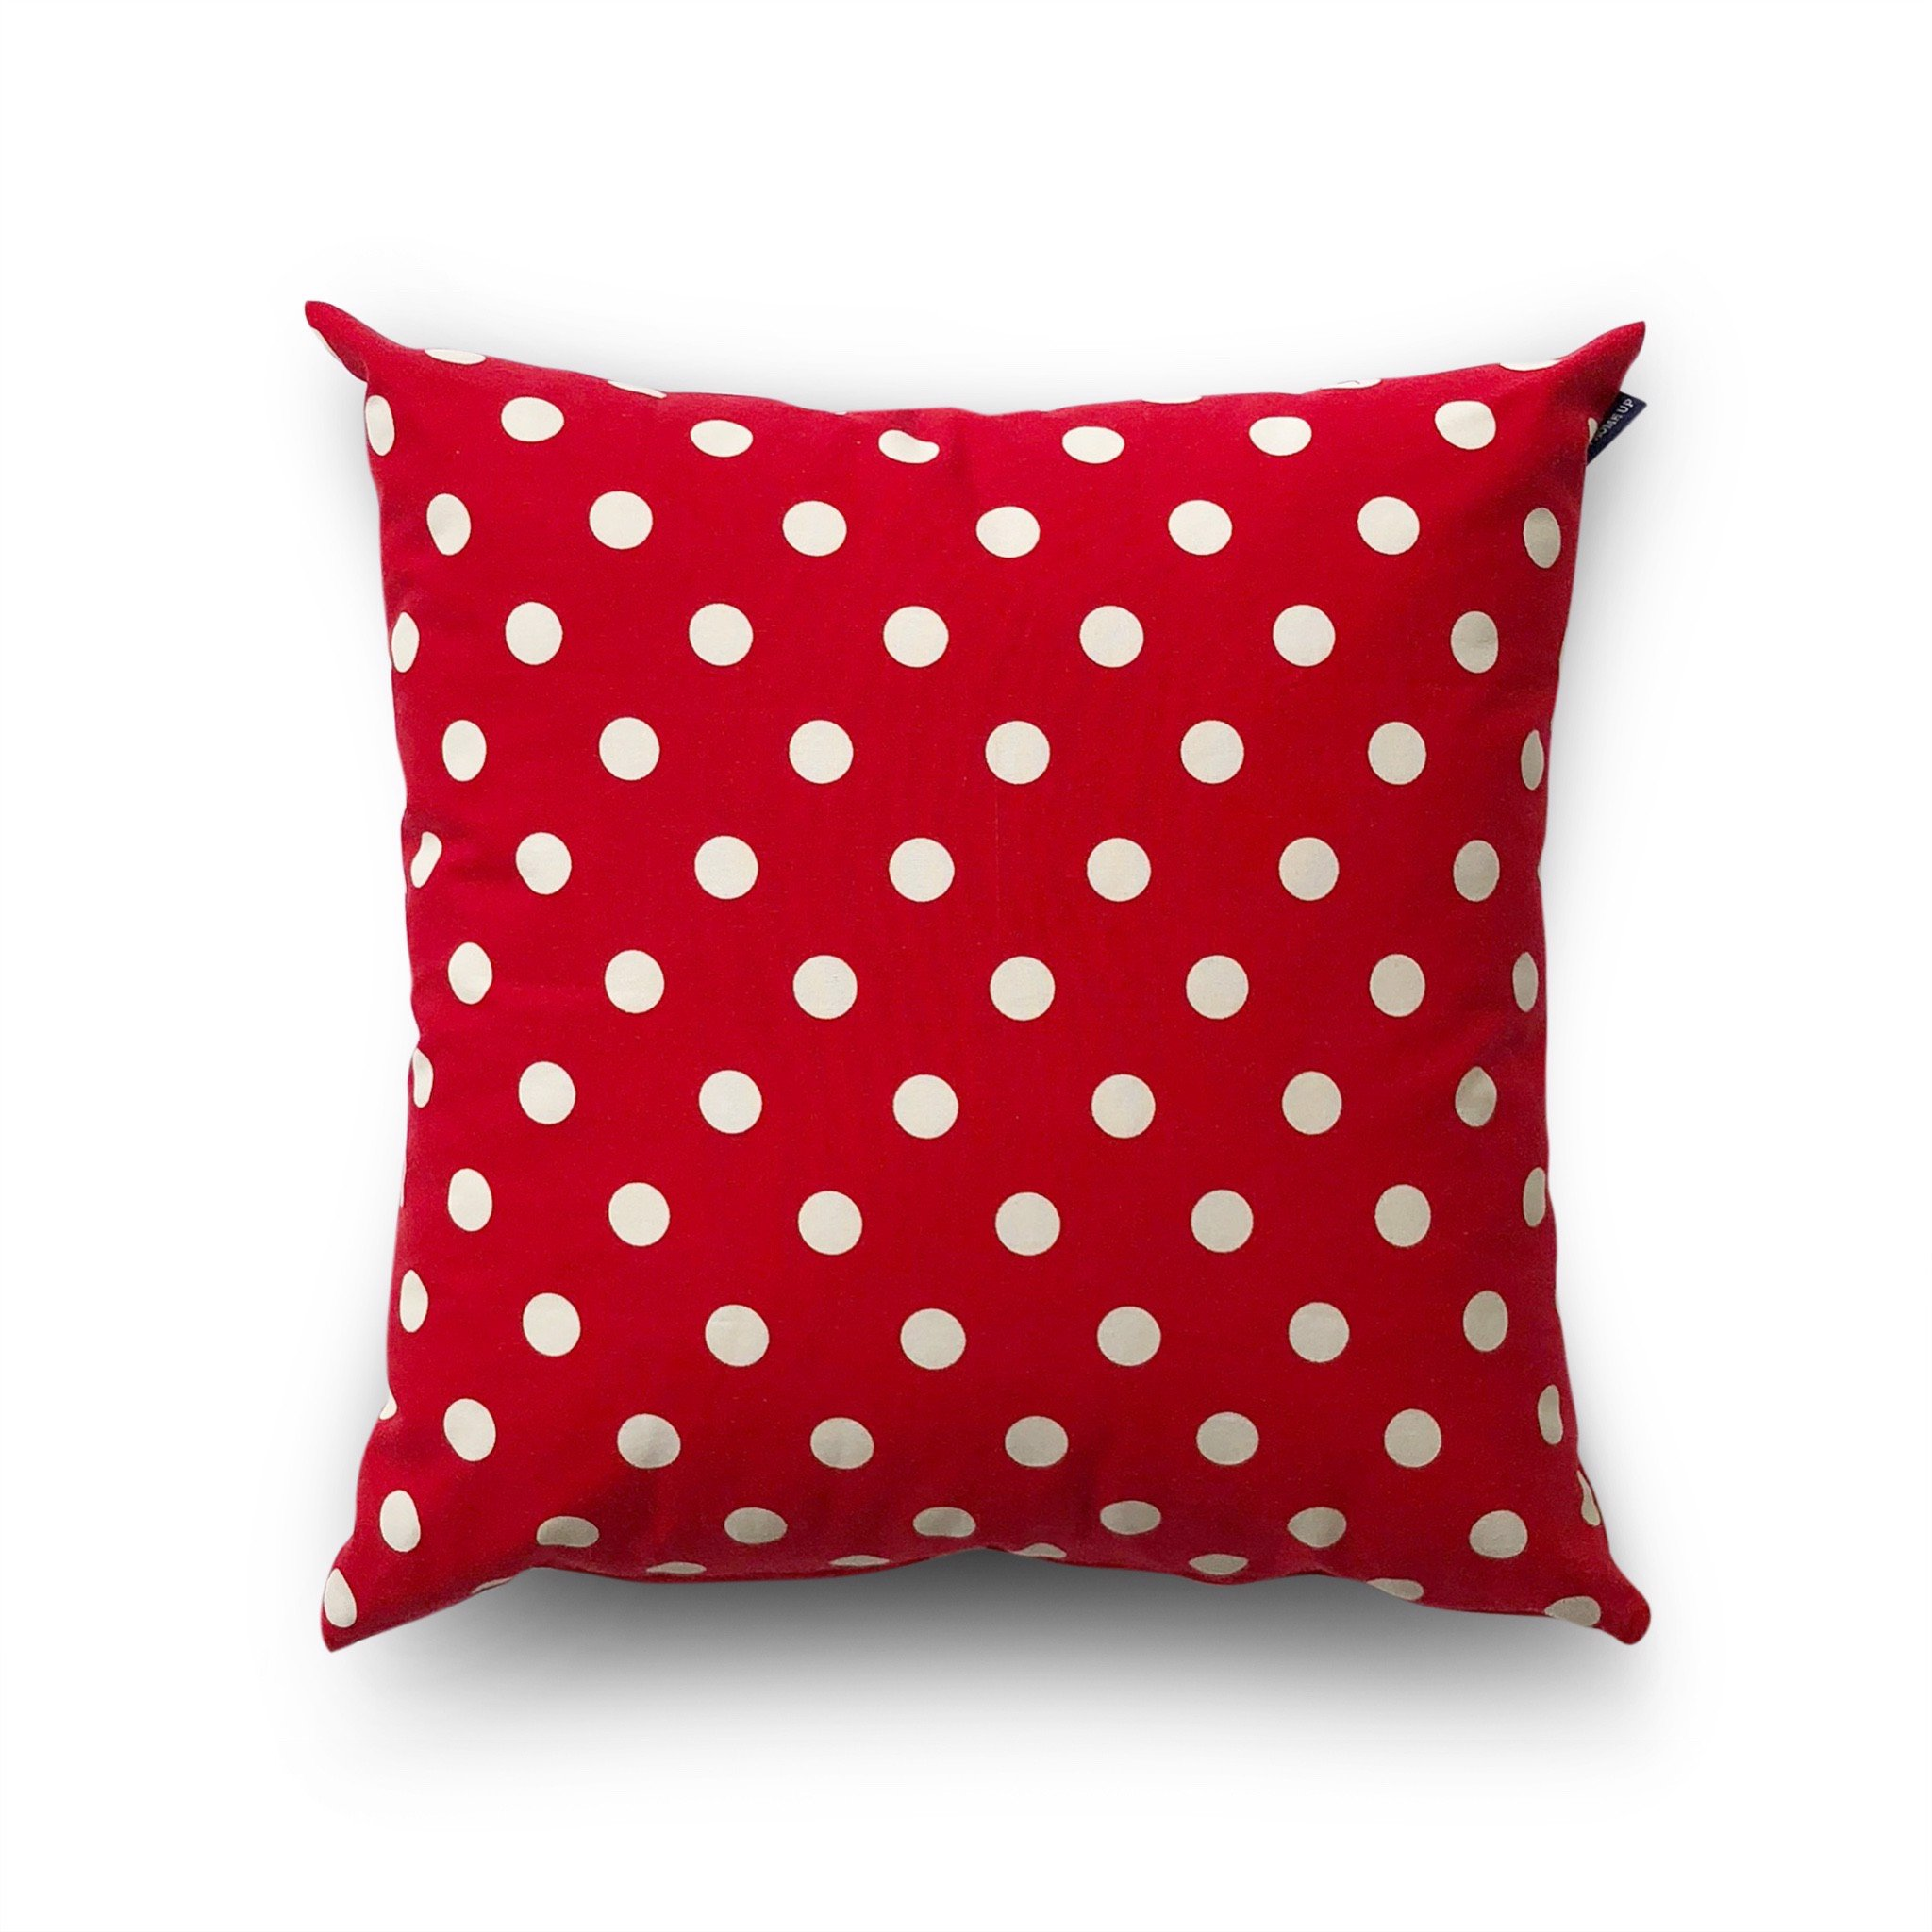 Cushion cover 46 White polka dot on red